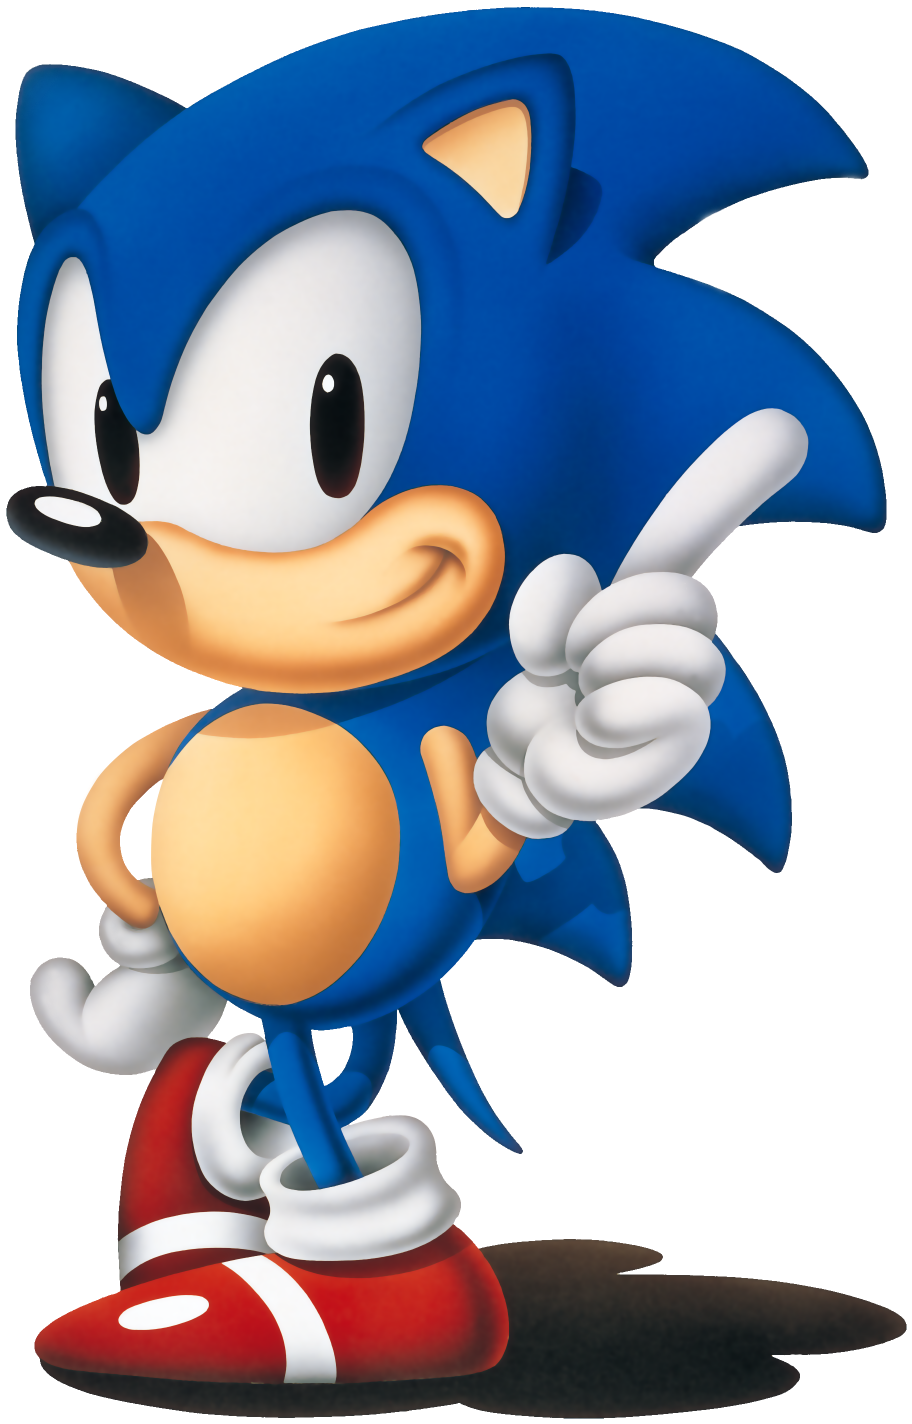 sonic-the-hedgehog-game-2